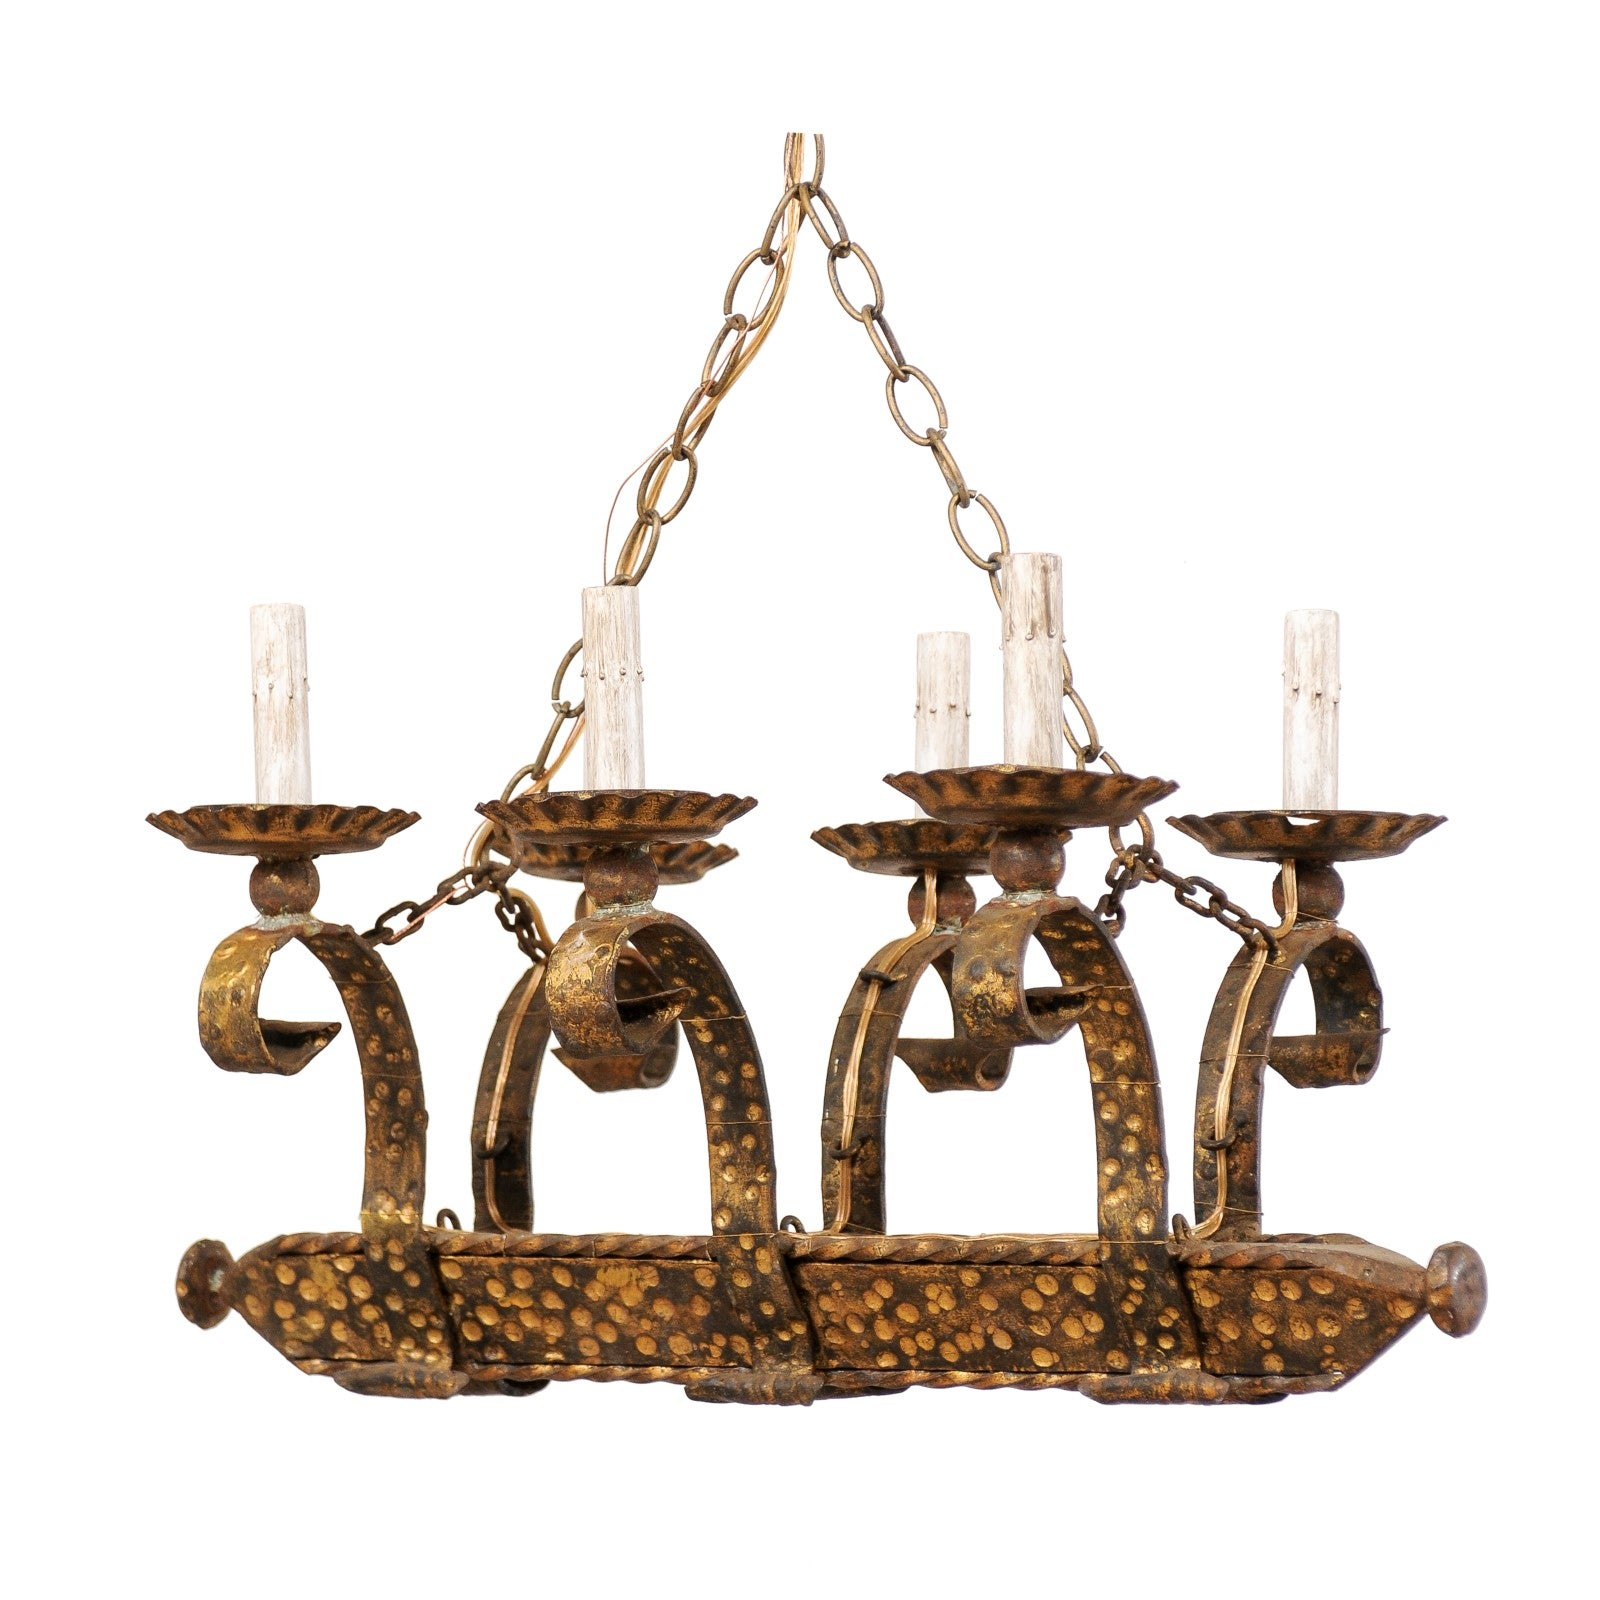 French Six-Light Forged and Hammered Iron Chandelier in Gold Colored Finish